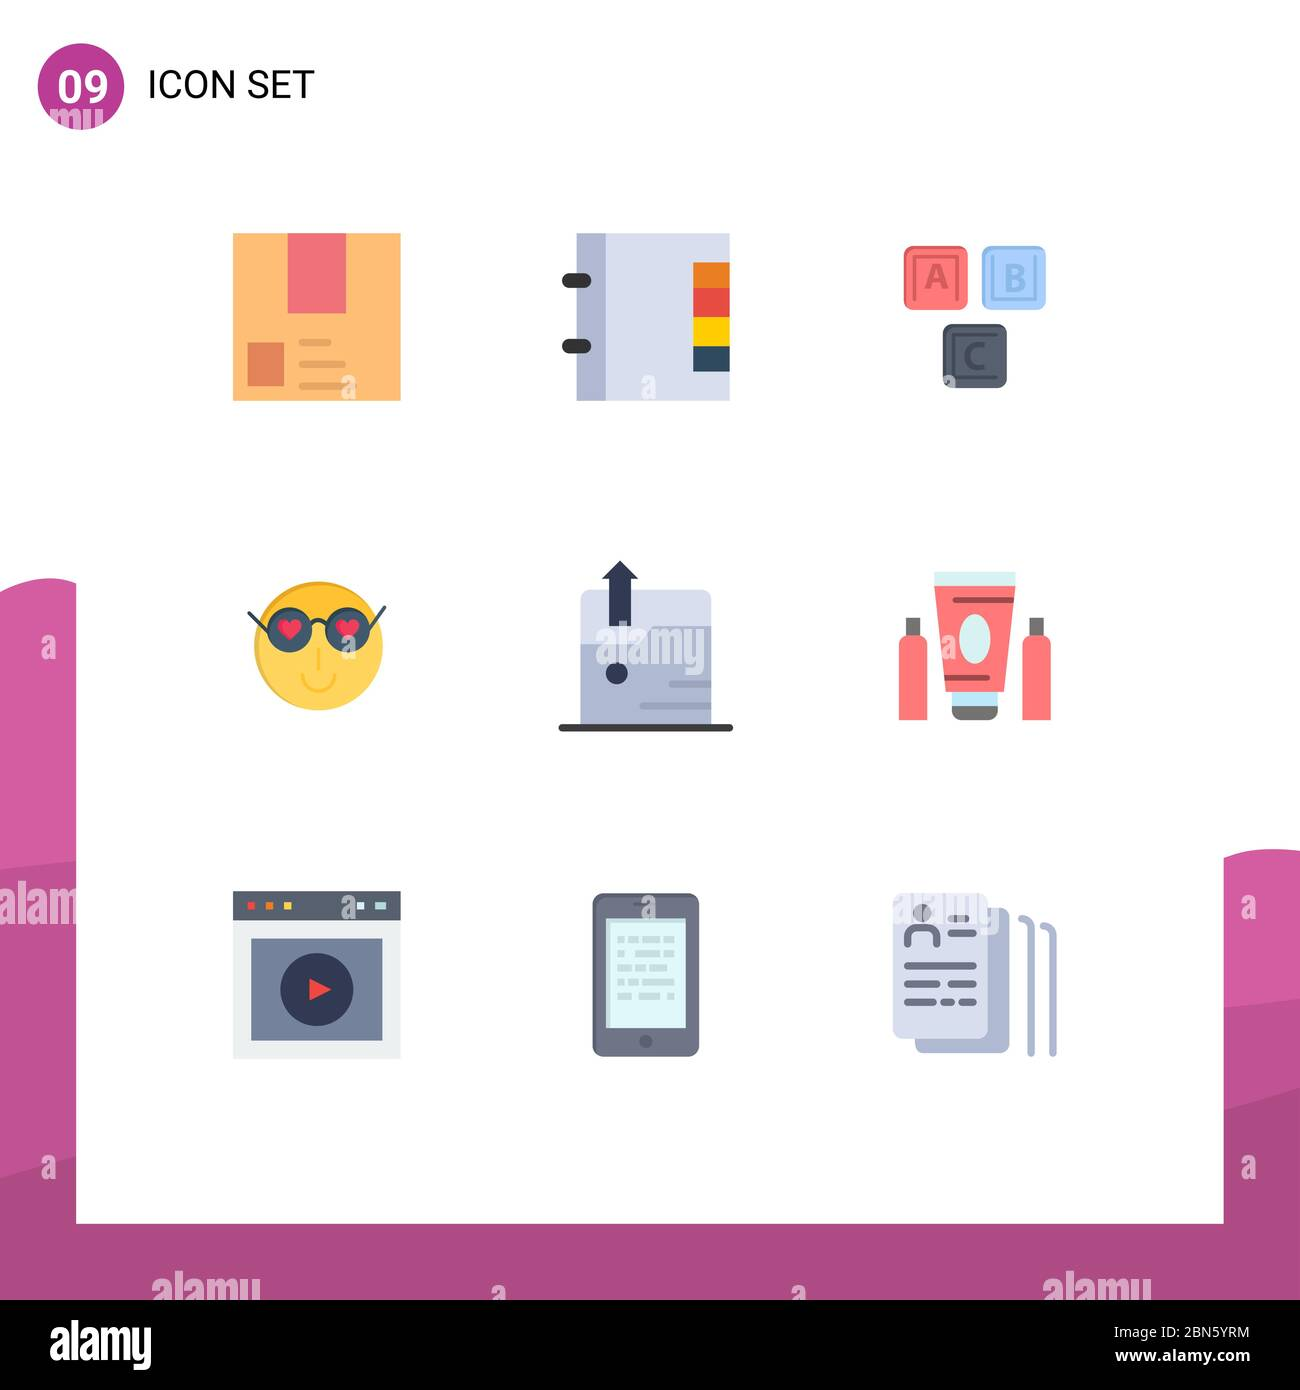 Modern Set Of 9 Flat Colors And Symbols Such As Cute Emoji Phone Smiley Alphabet Editable Vector Design Elements Stock Vector Image Art Alamy